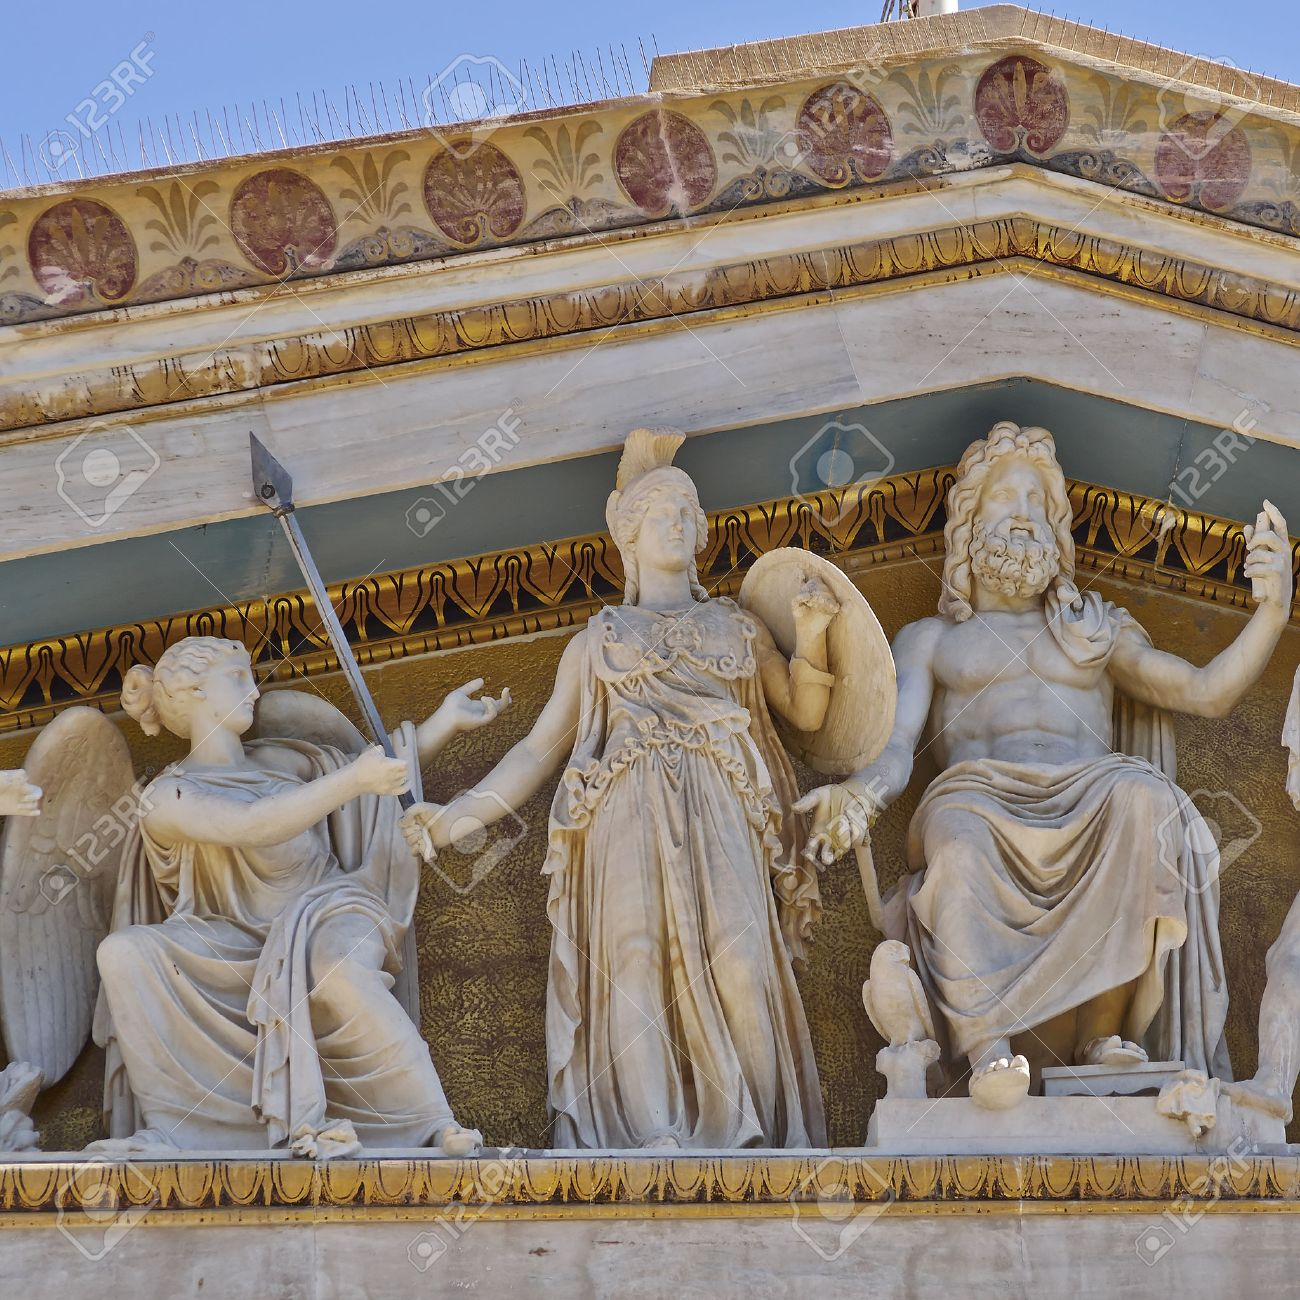 zeus athena and other ancient greek gods and deities national